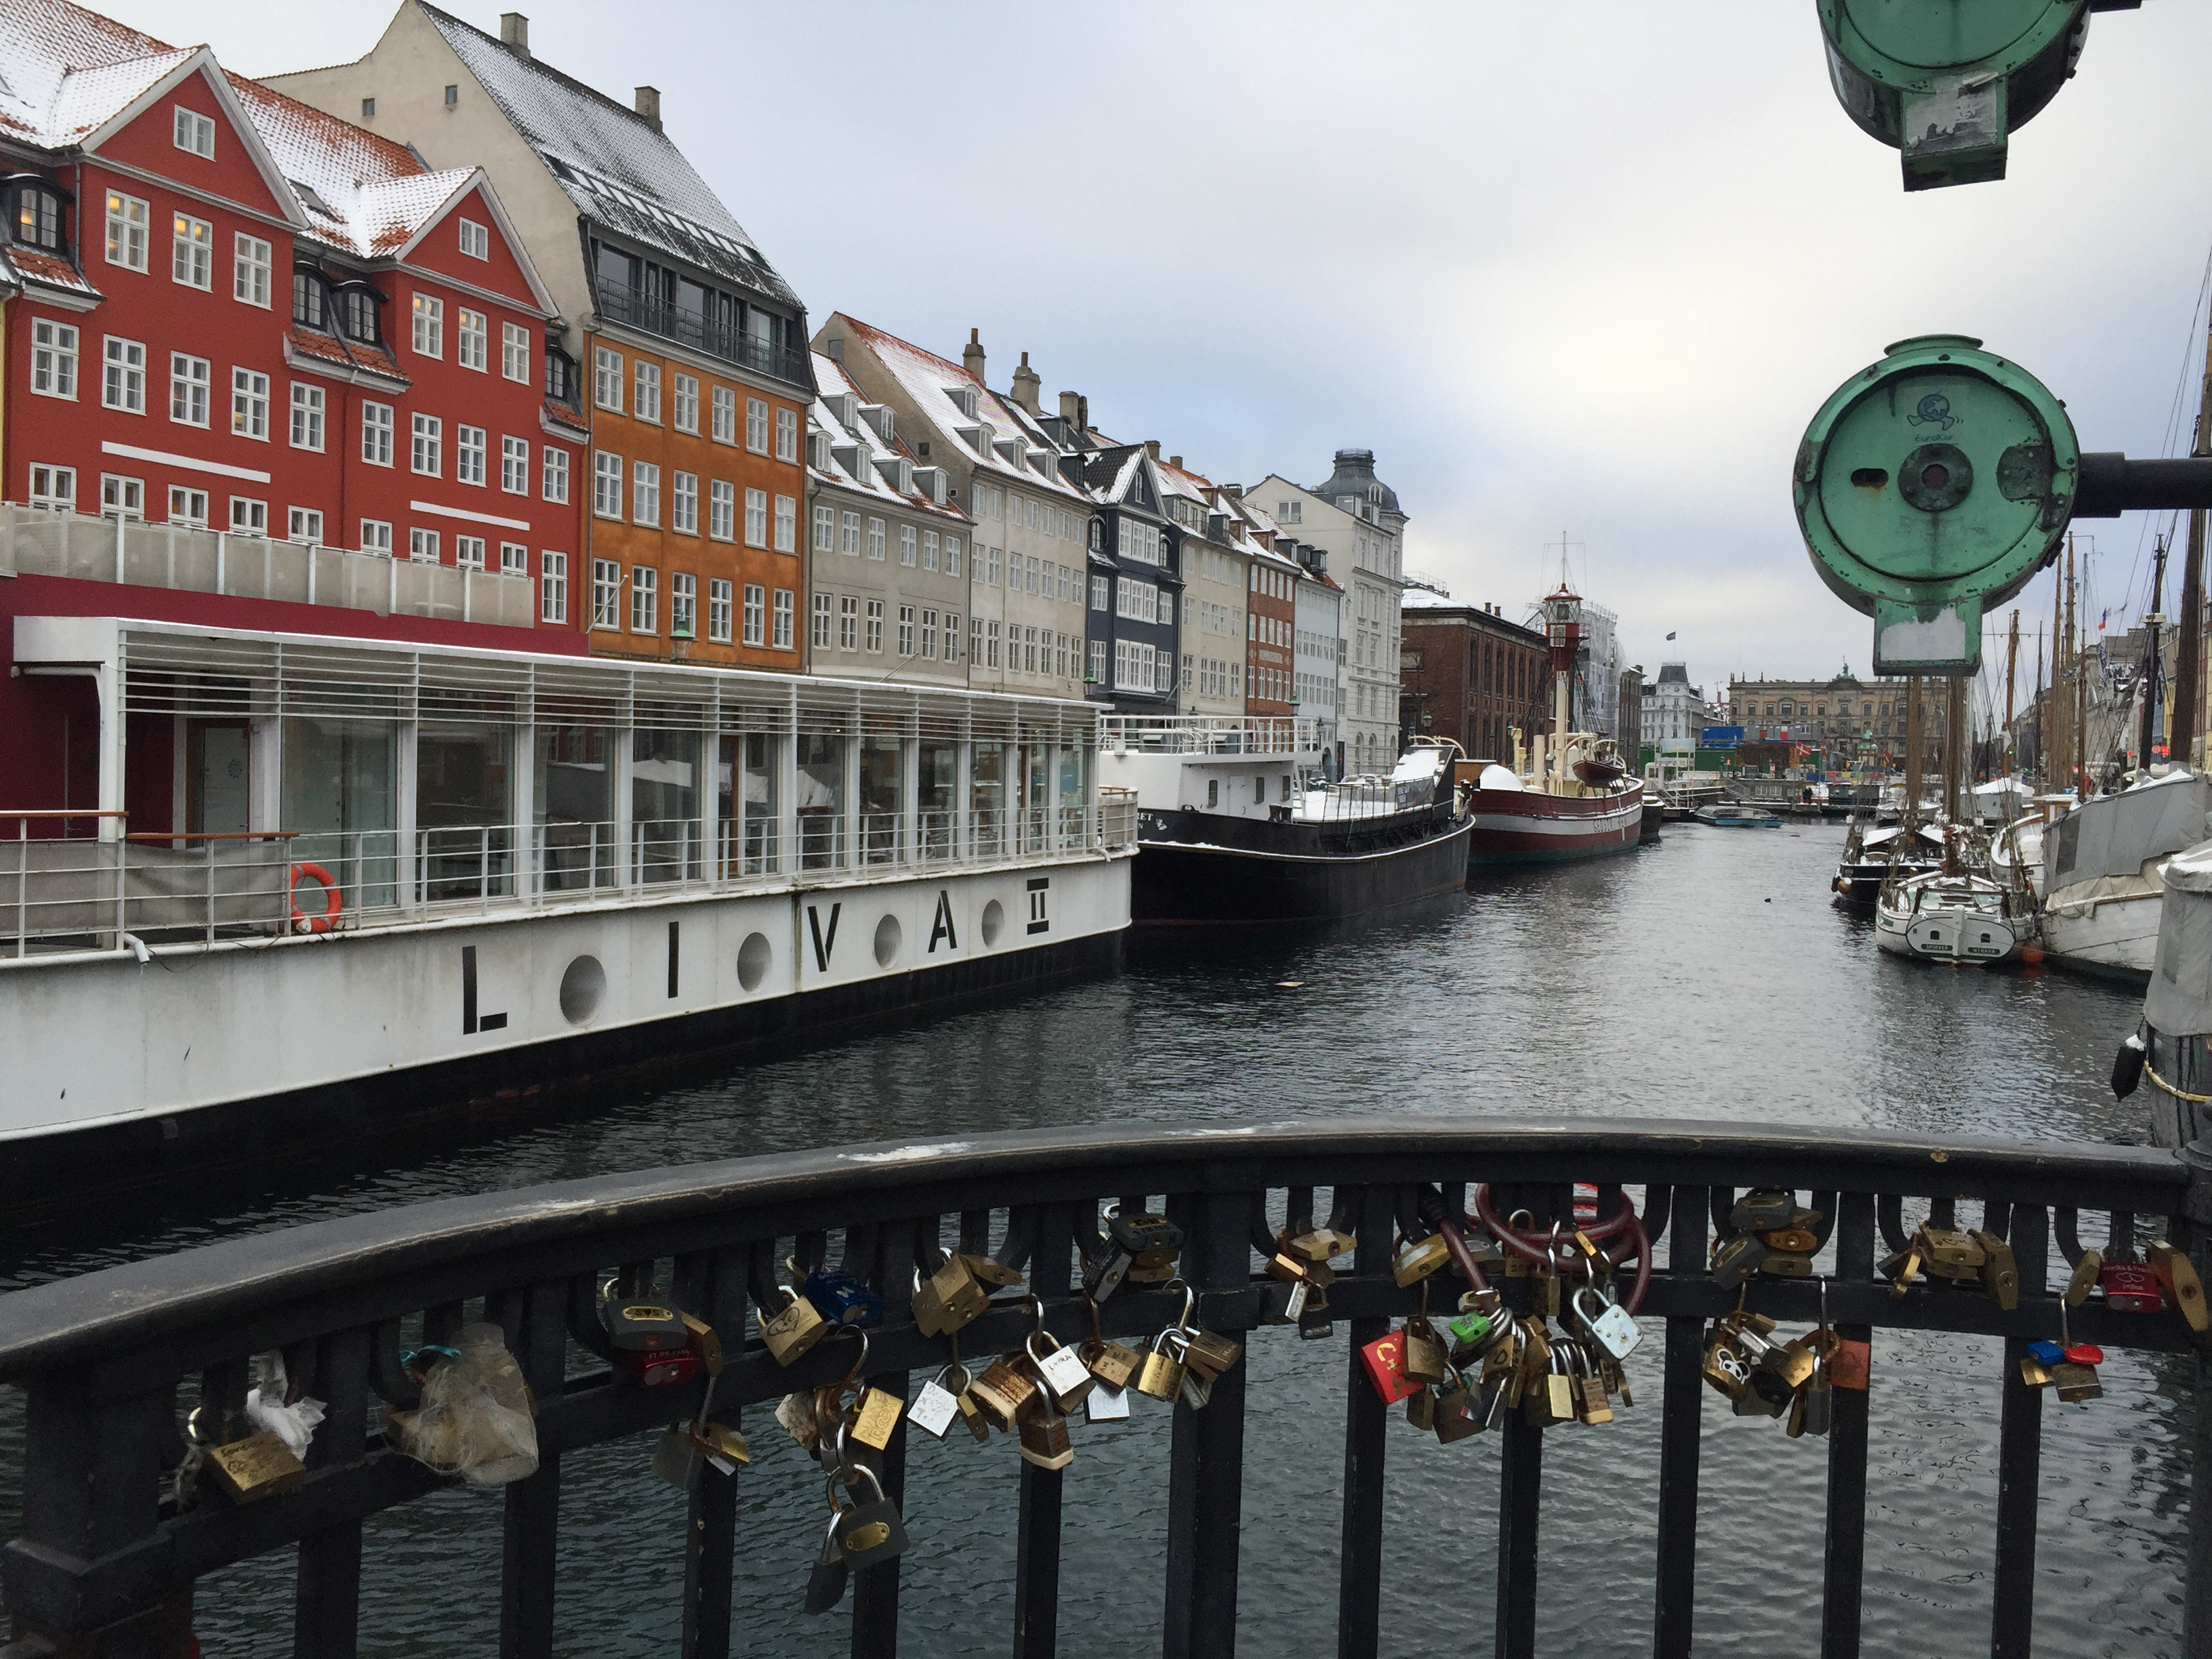 Love locks in Denmark